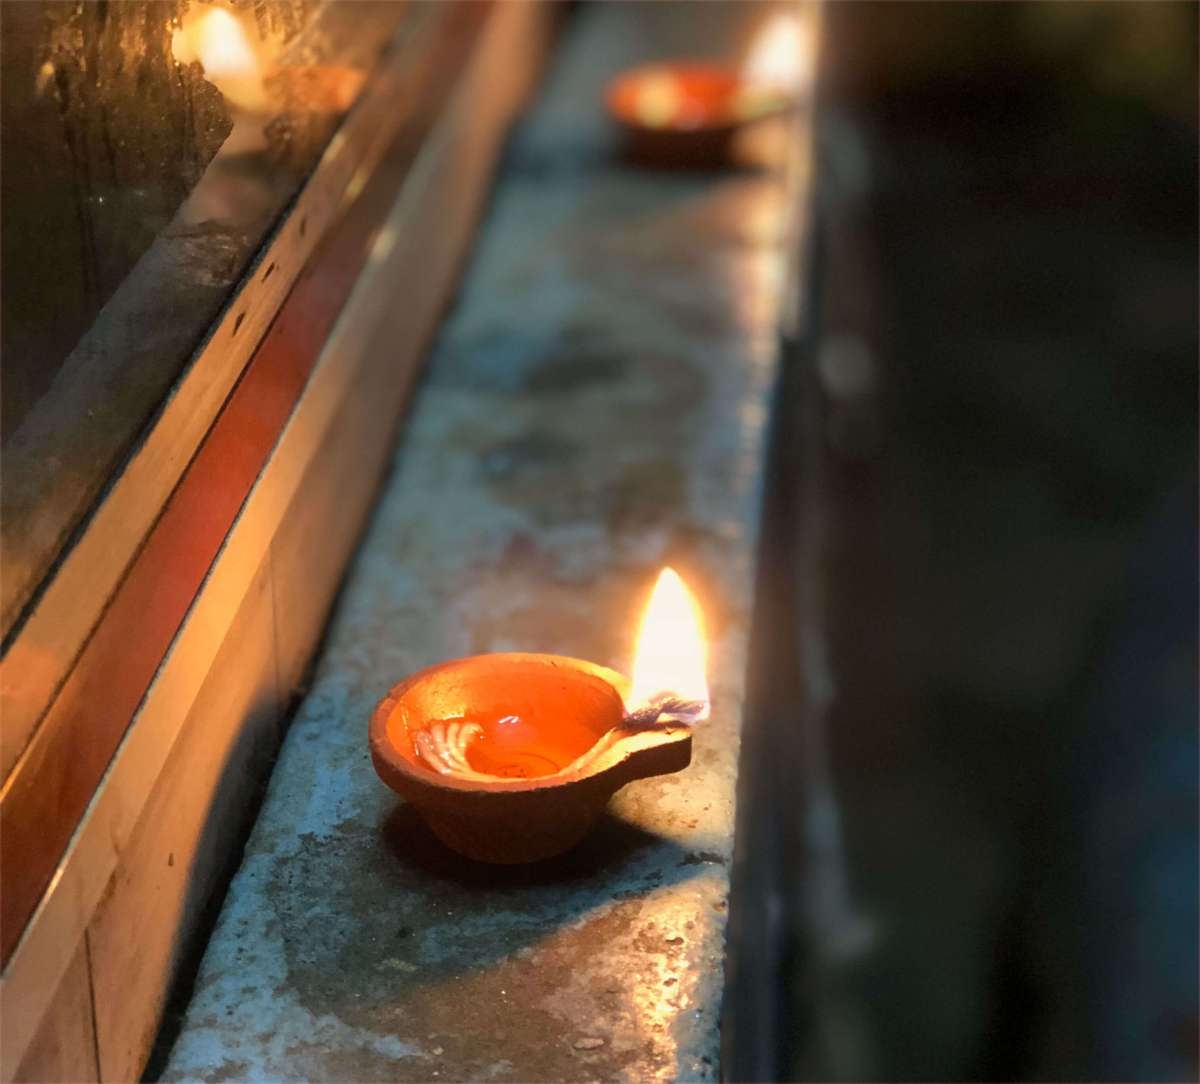 A flame in a clay lamp